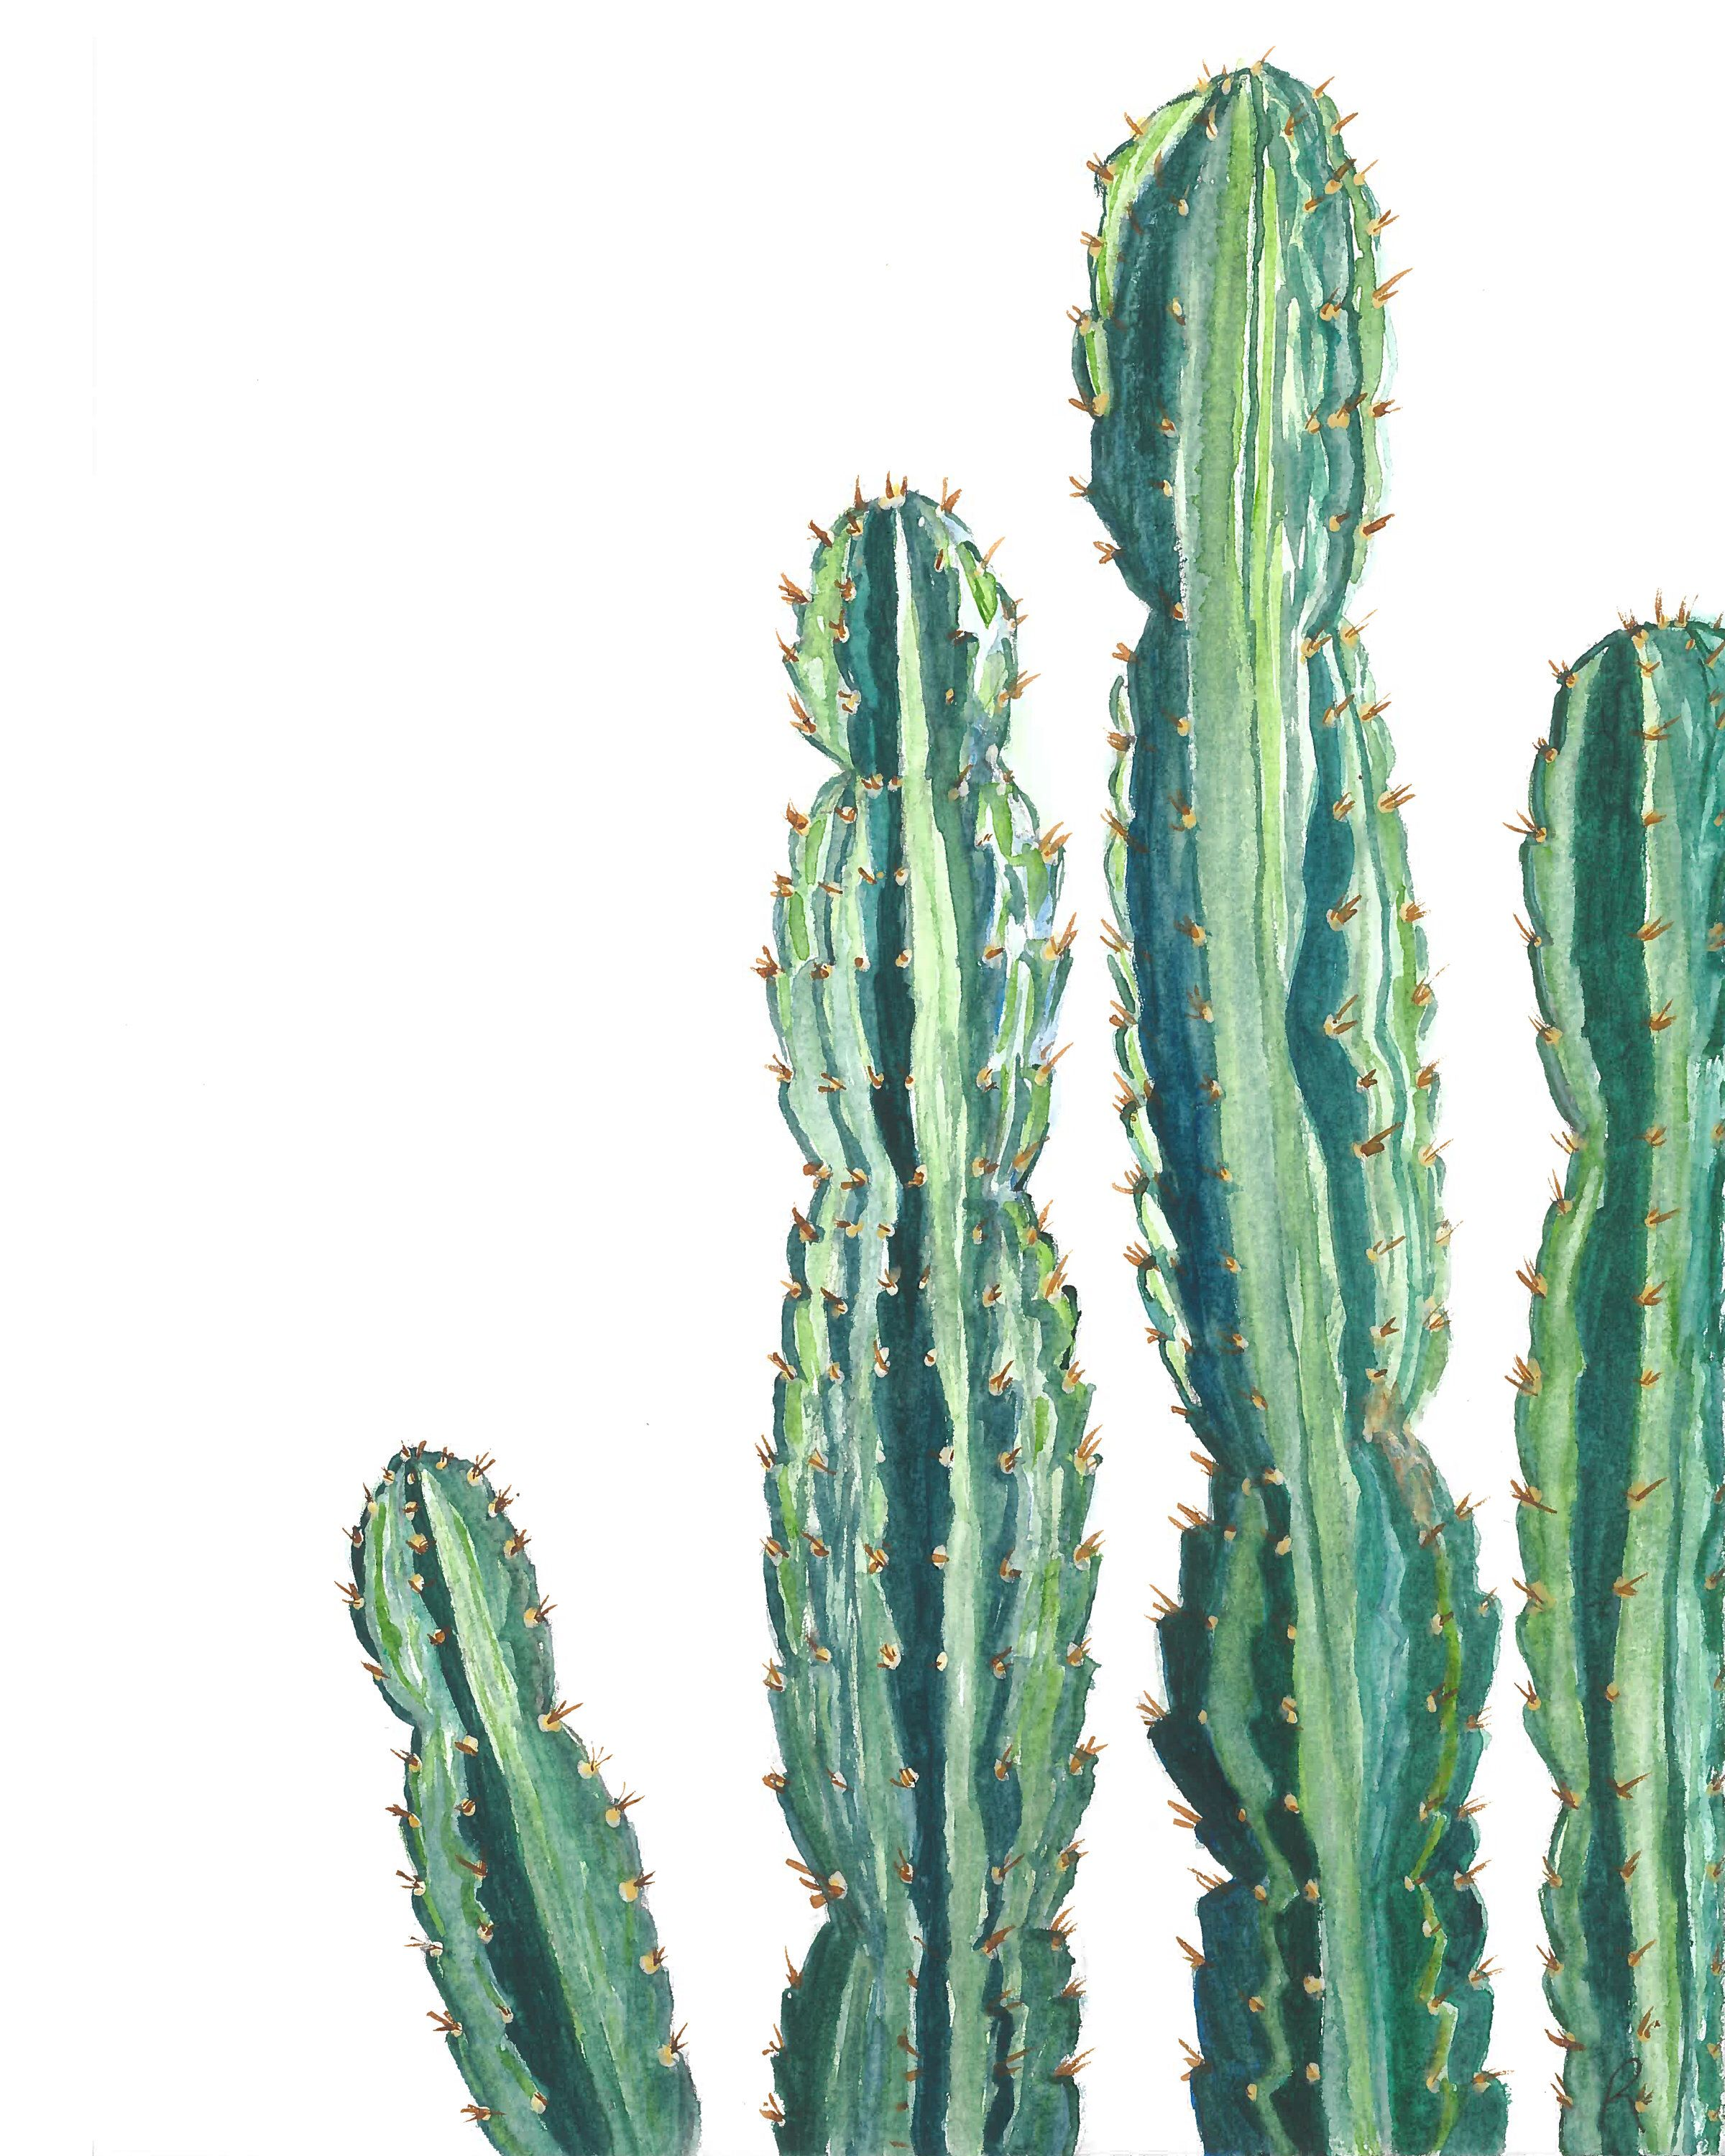 Cactus watercolor art print, cactus wall art, cactus decor, desert decor, modern artwork, cacti art, nursery decor, cactus drawing